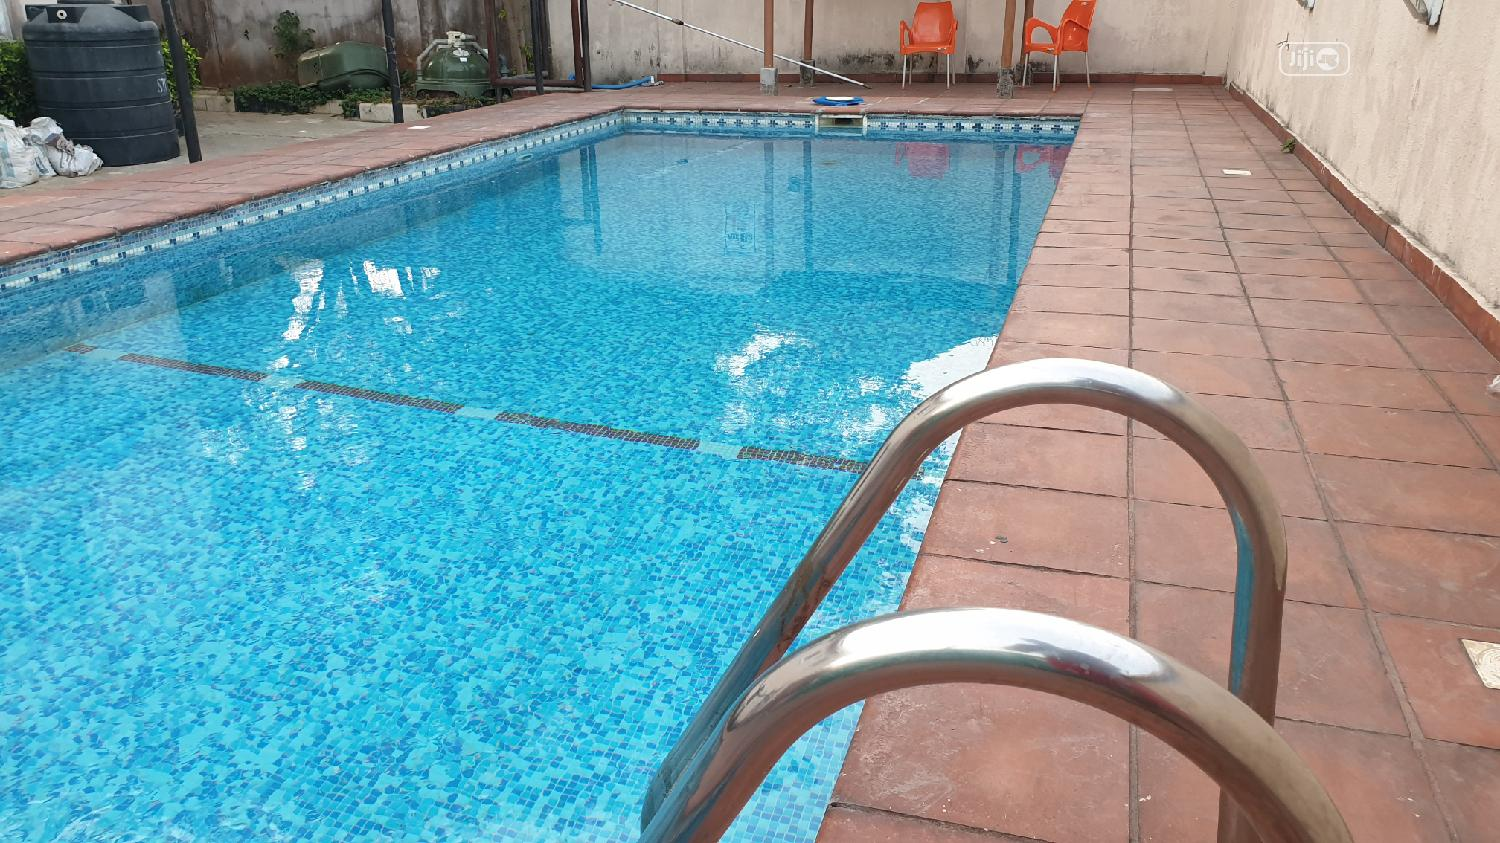 Archive: 4 Shared Bedroom Monthly for Rent in Lekki 1 With Pool